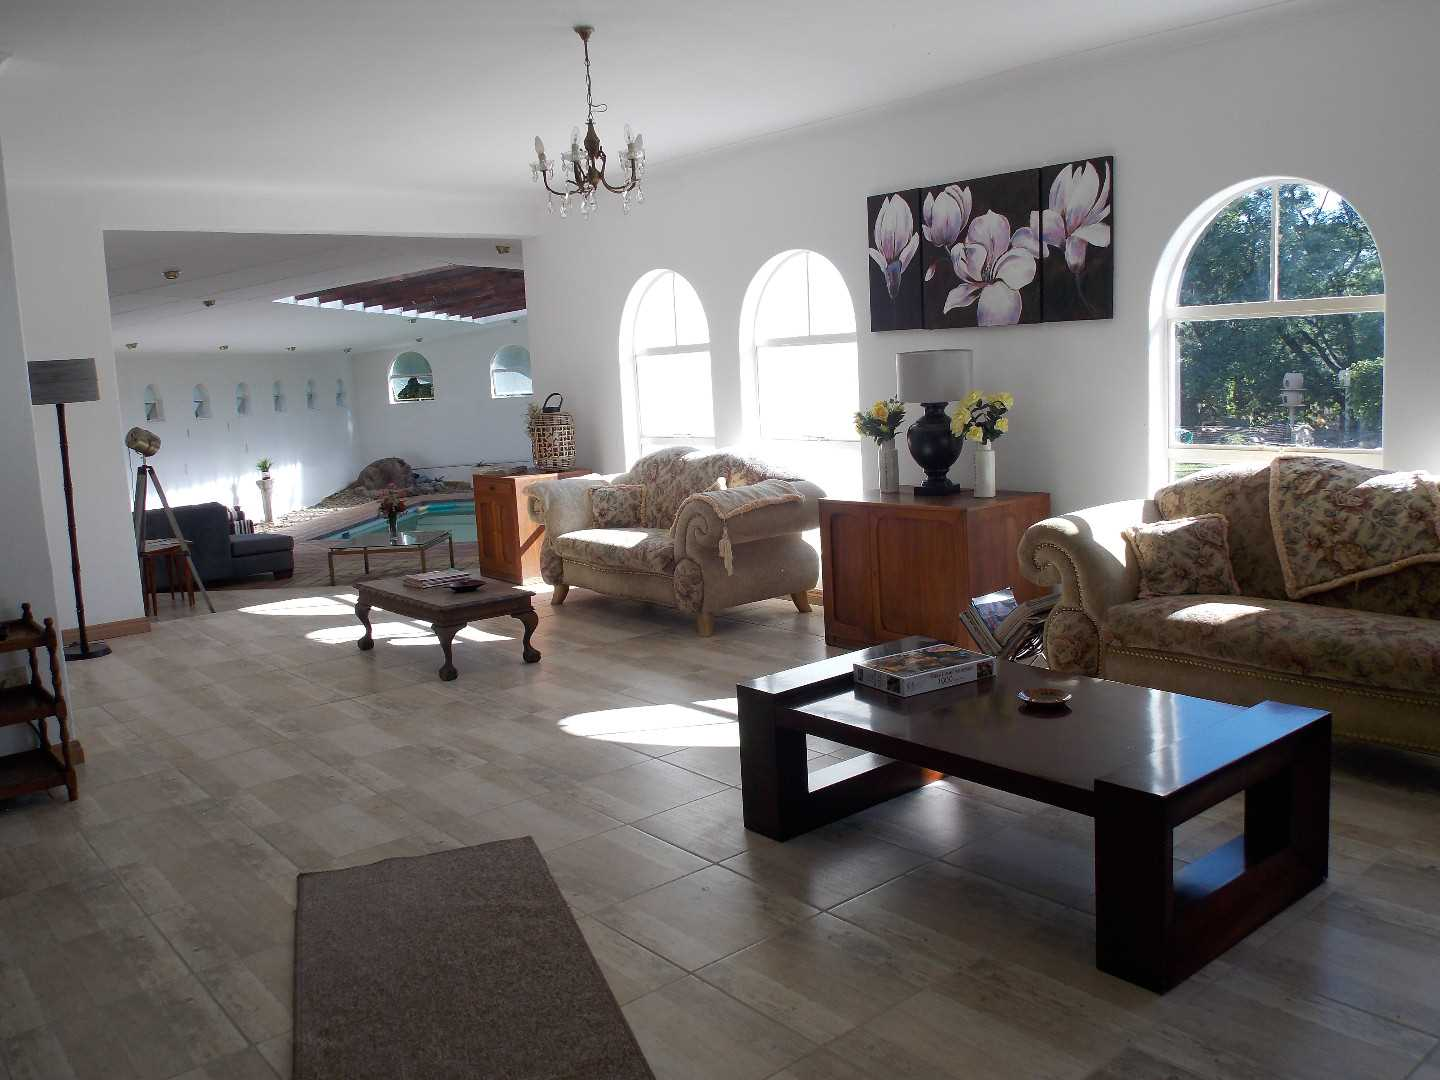 three living room spaces in the main house